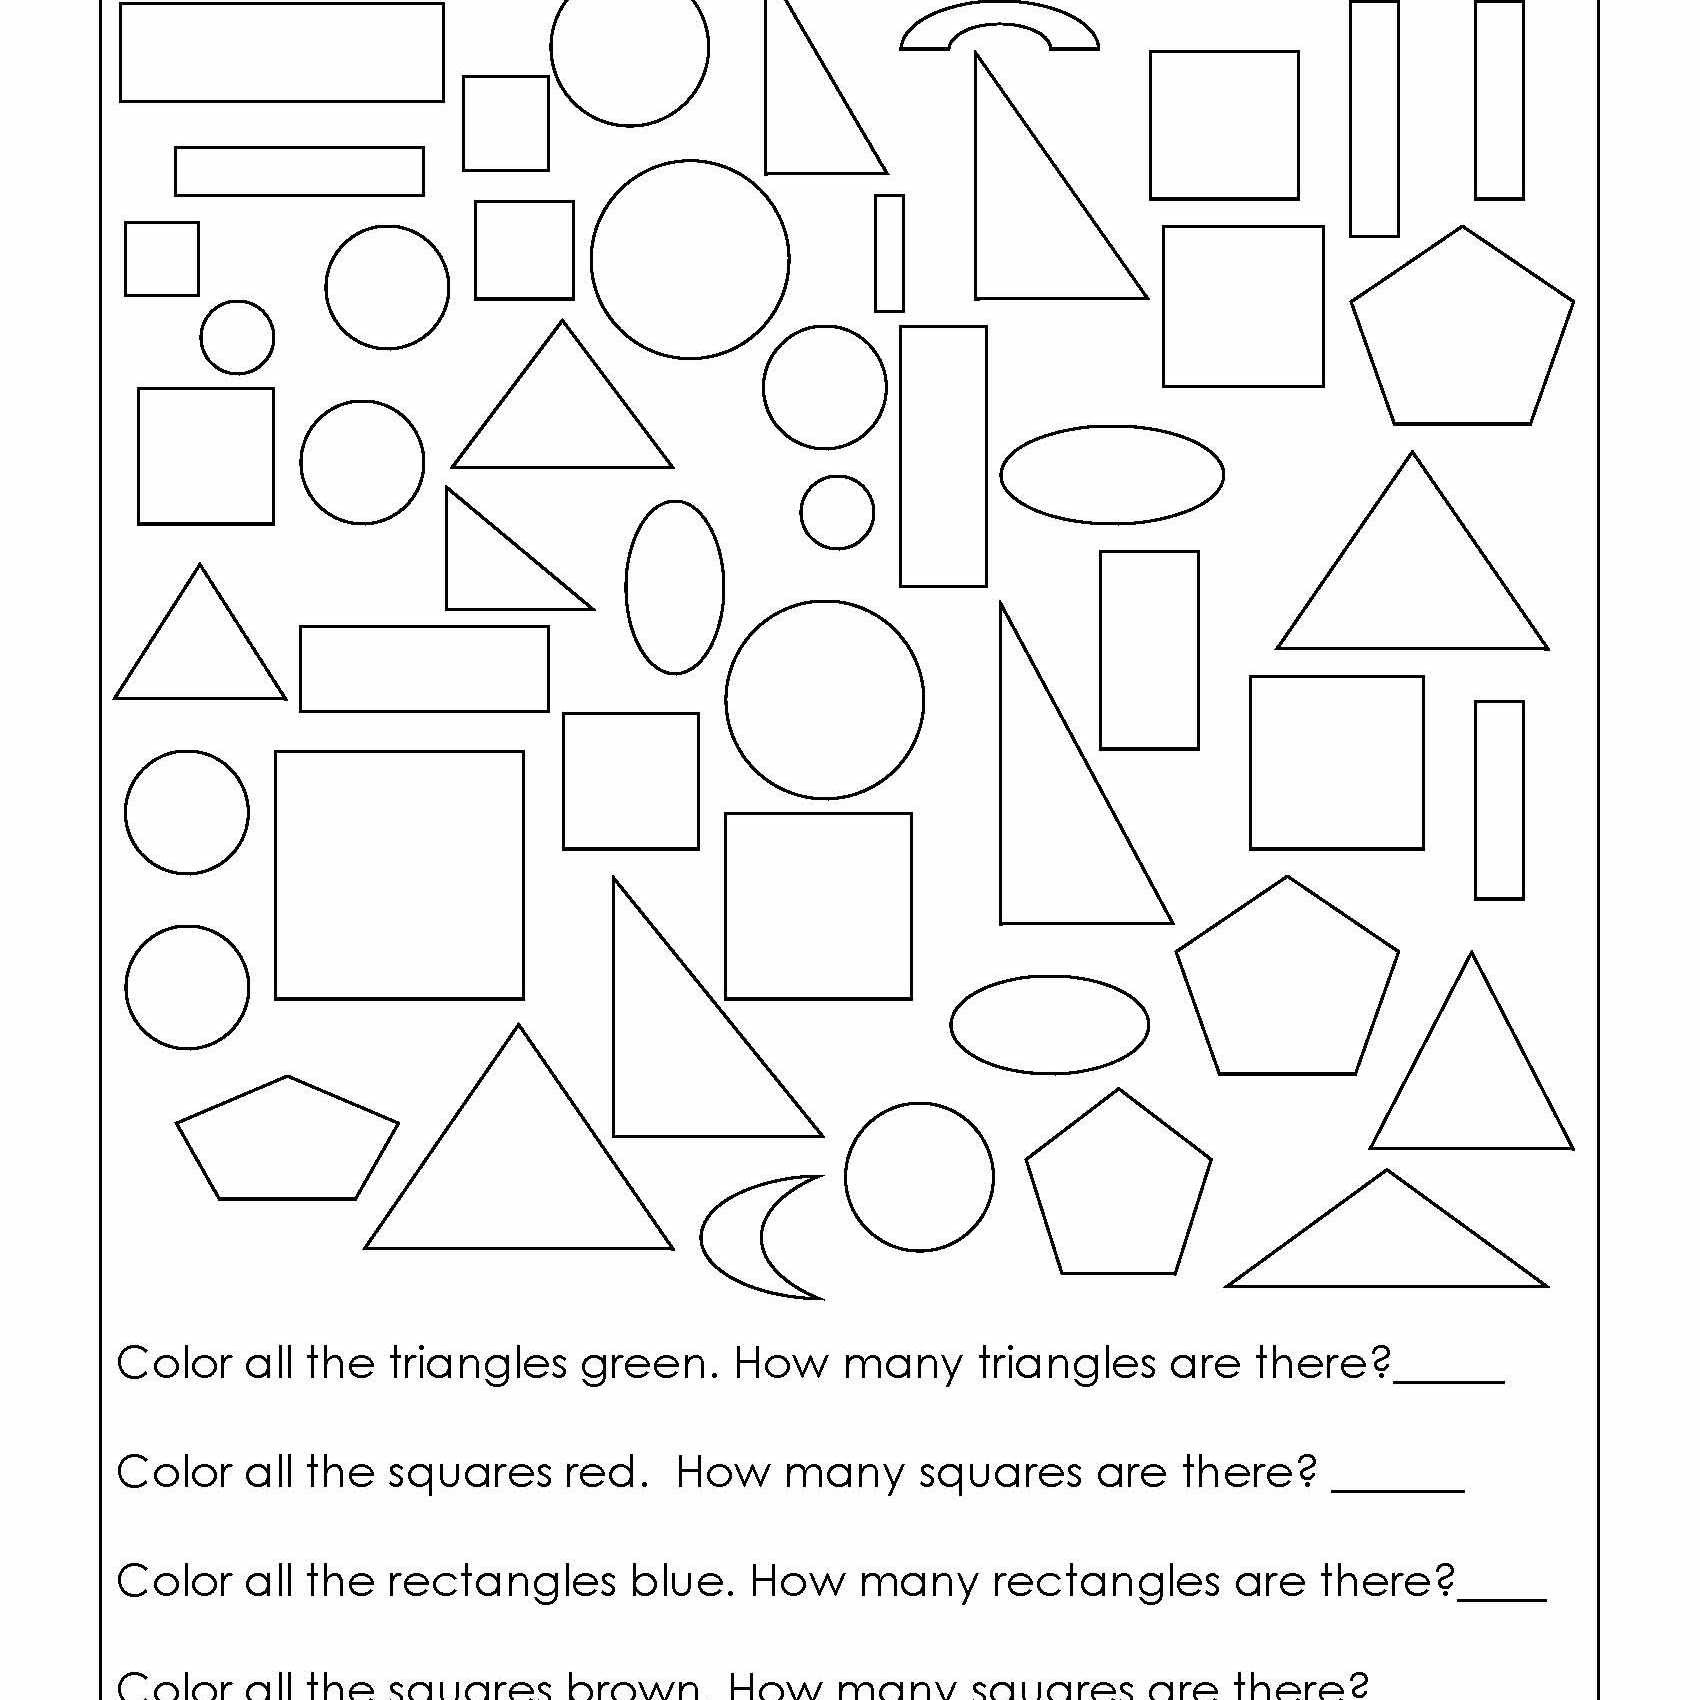 3 Dimensional Shapes Worksheet Geometry Worksheets for Students In 1st Grade